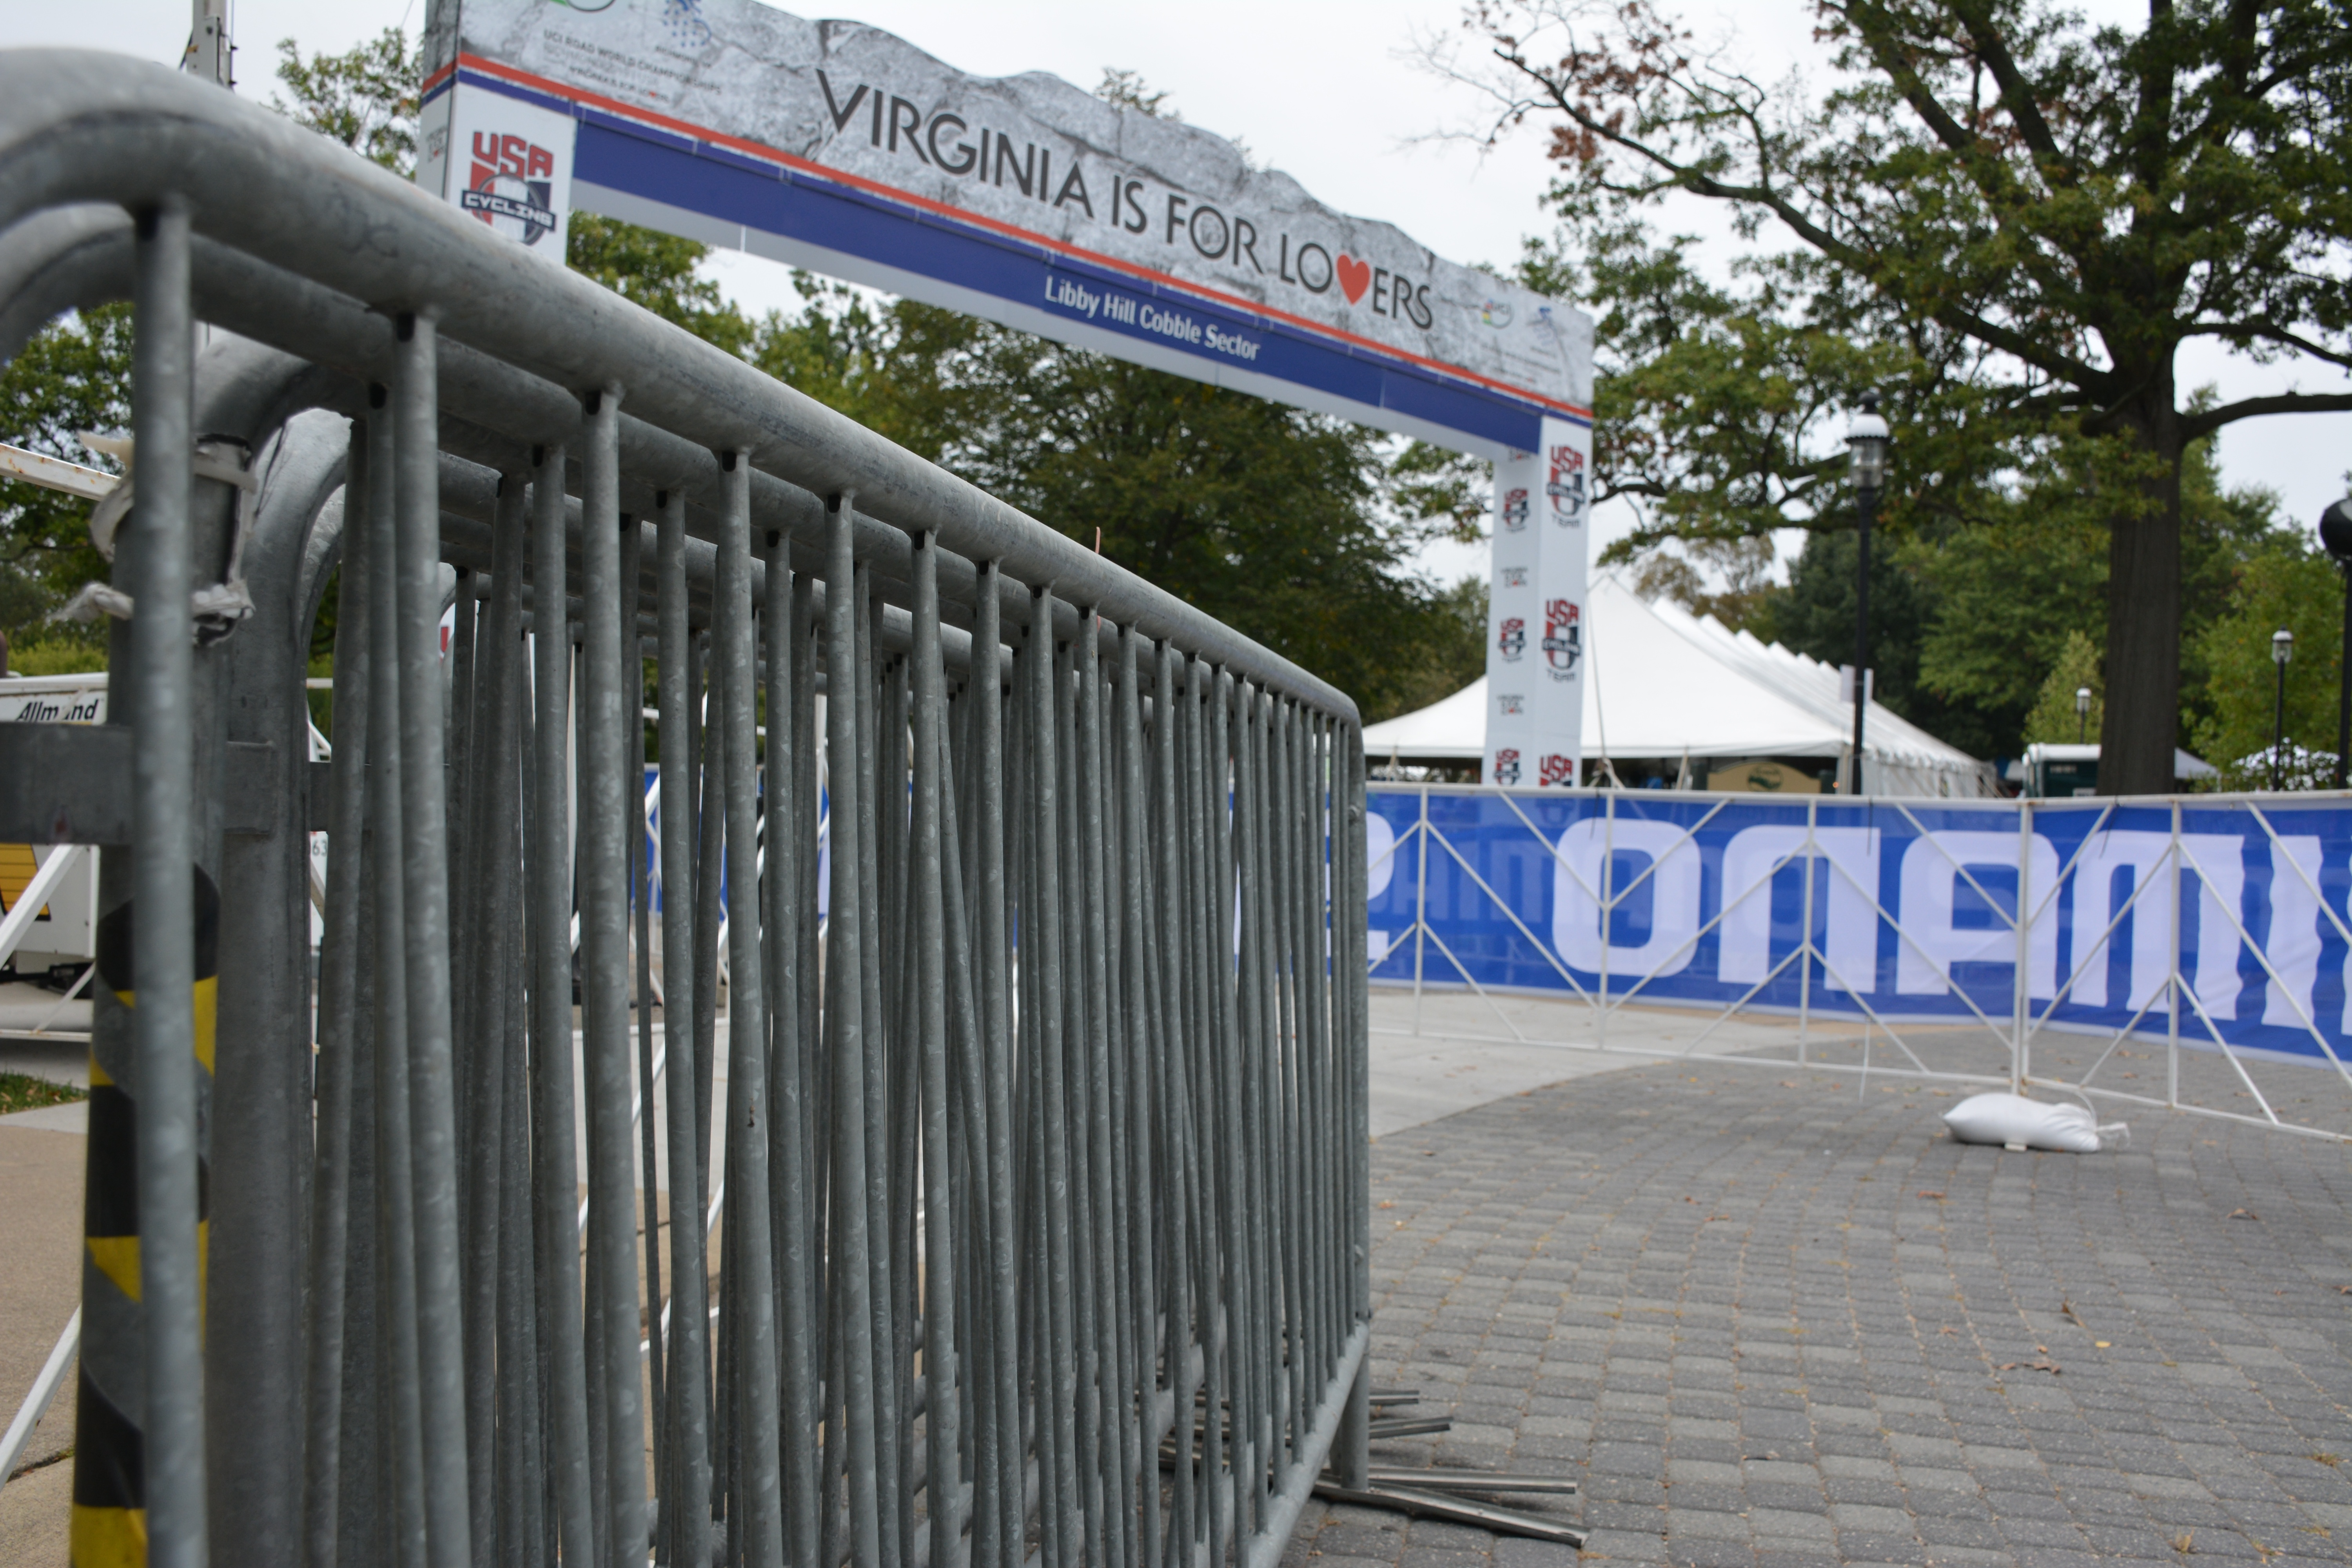 A Virginia is for Lovers arch lines the Libby Hill cobblestone UCI race track with temporary barricades from Hurricane Fence Company